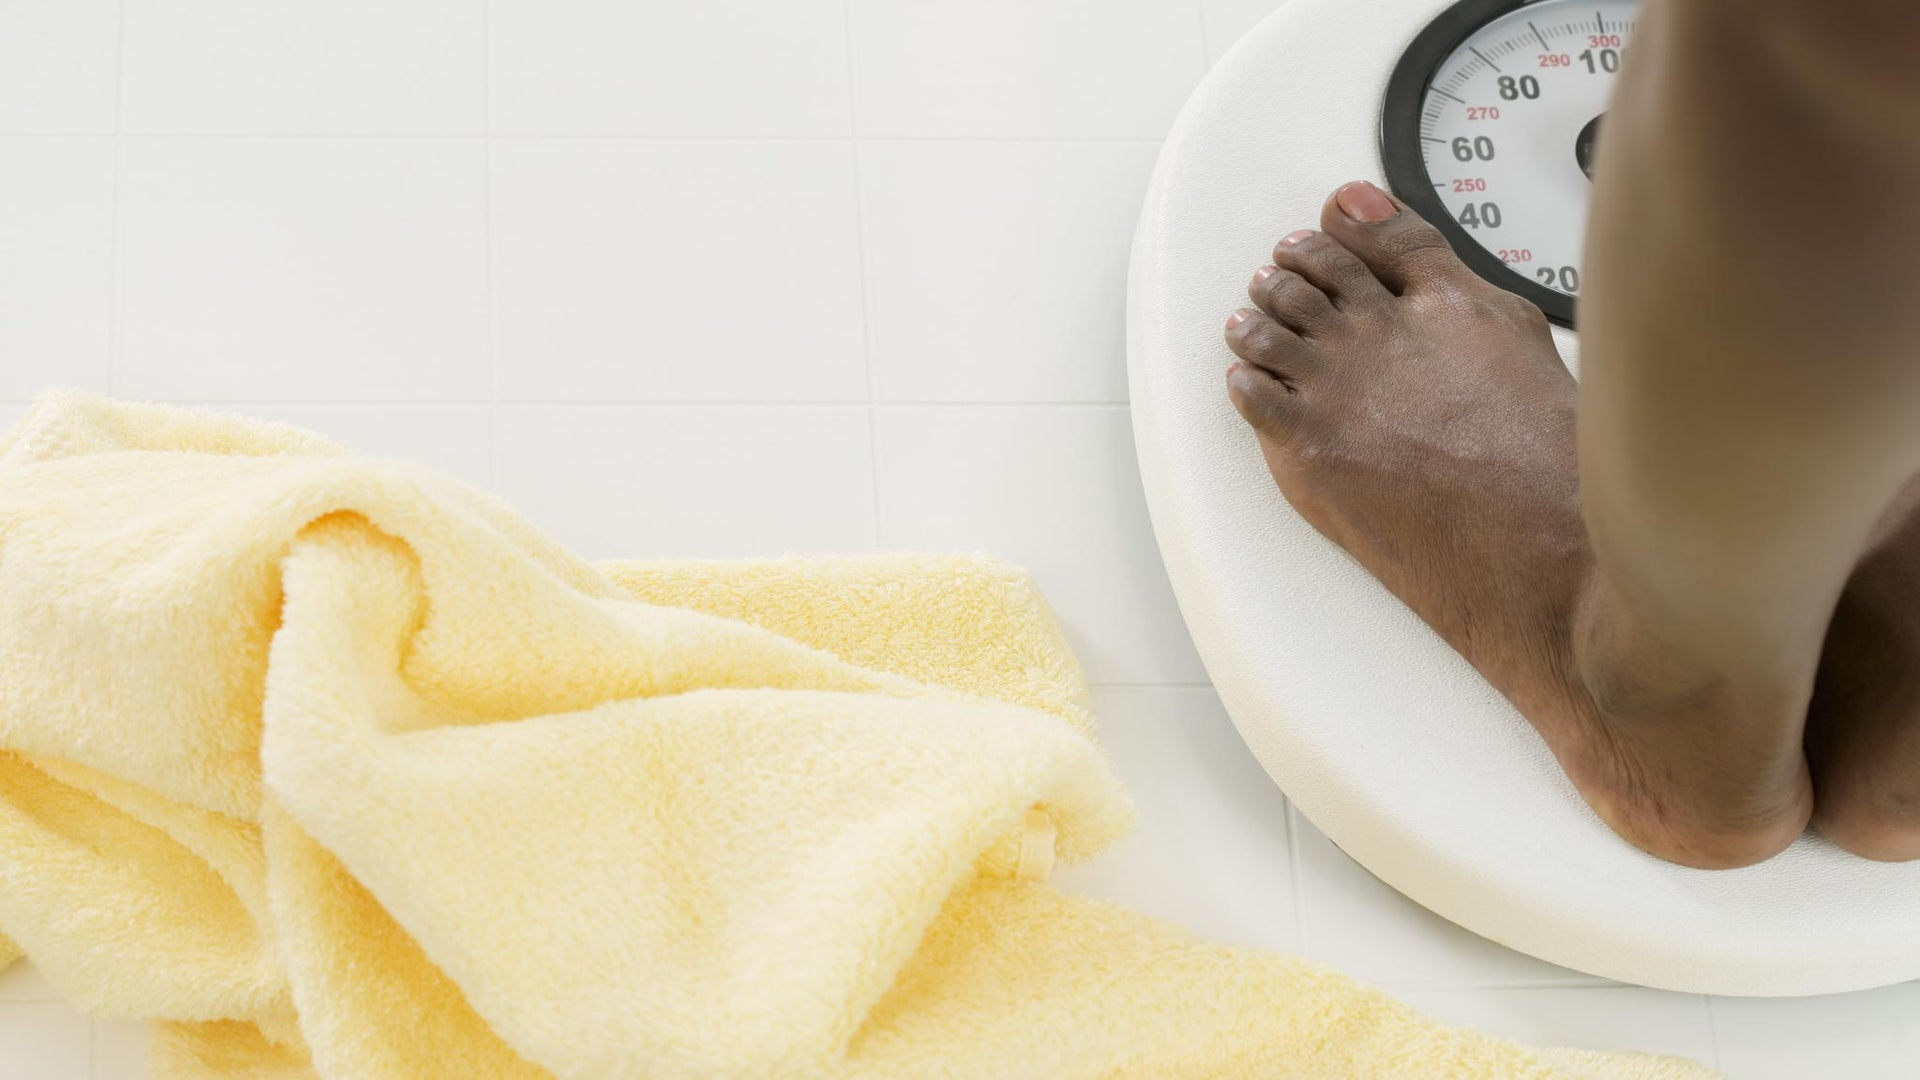 ESSENCE Poll: What's Your Relationship With Your Weight?